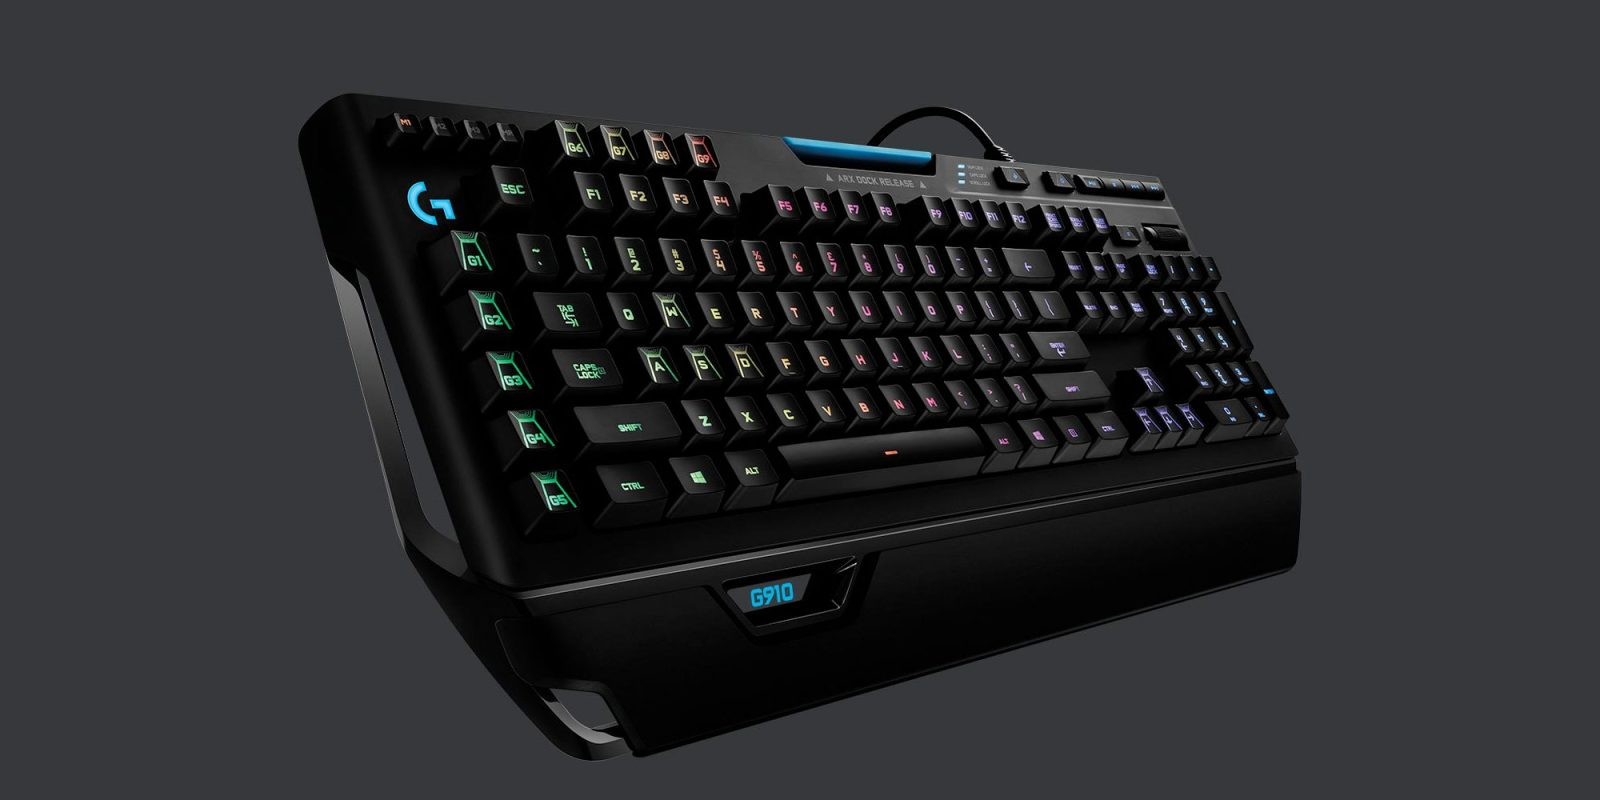 Logitech's G910 Orion Spark Gaming Keyboard touts all the